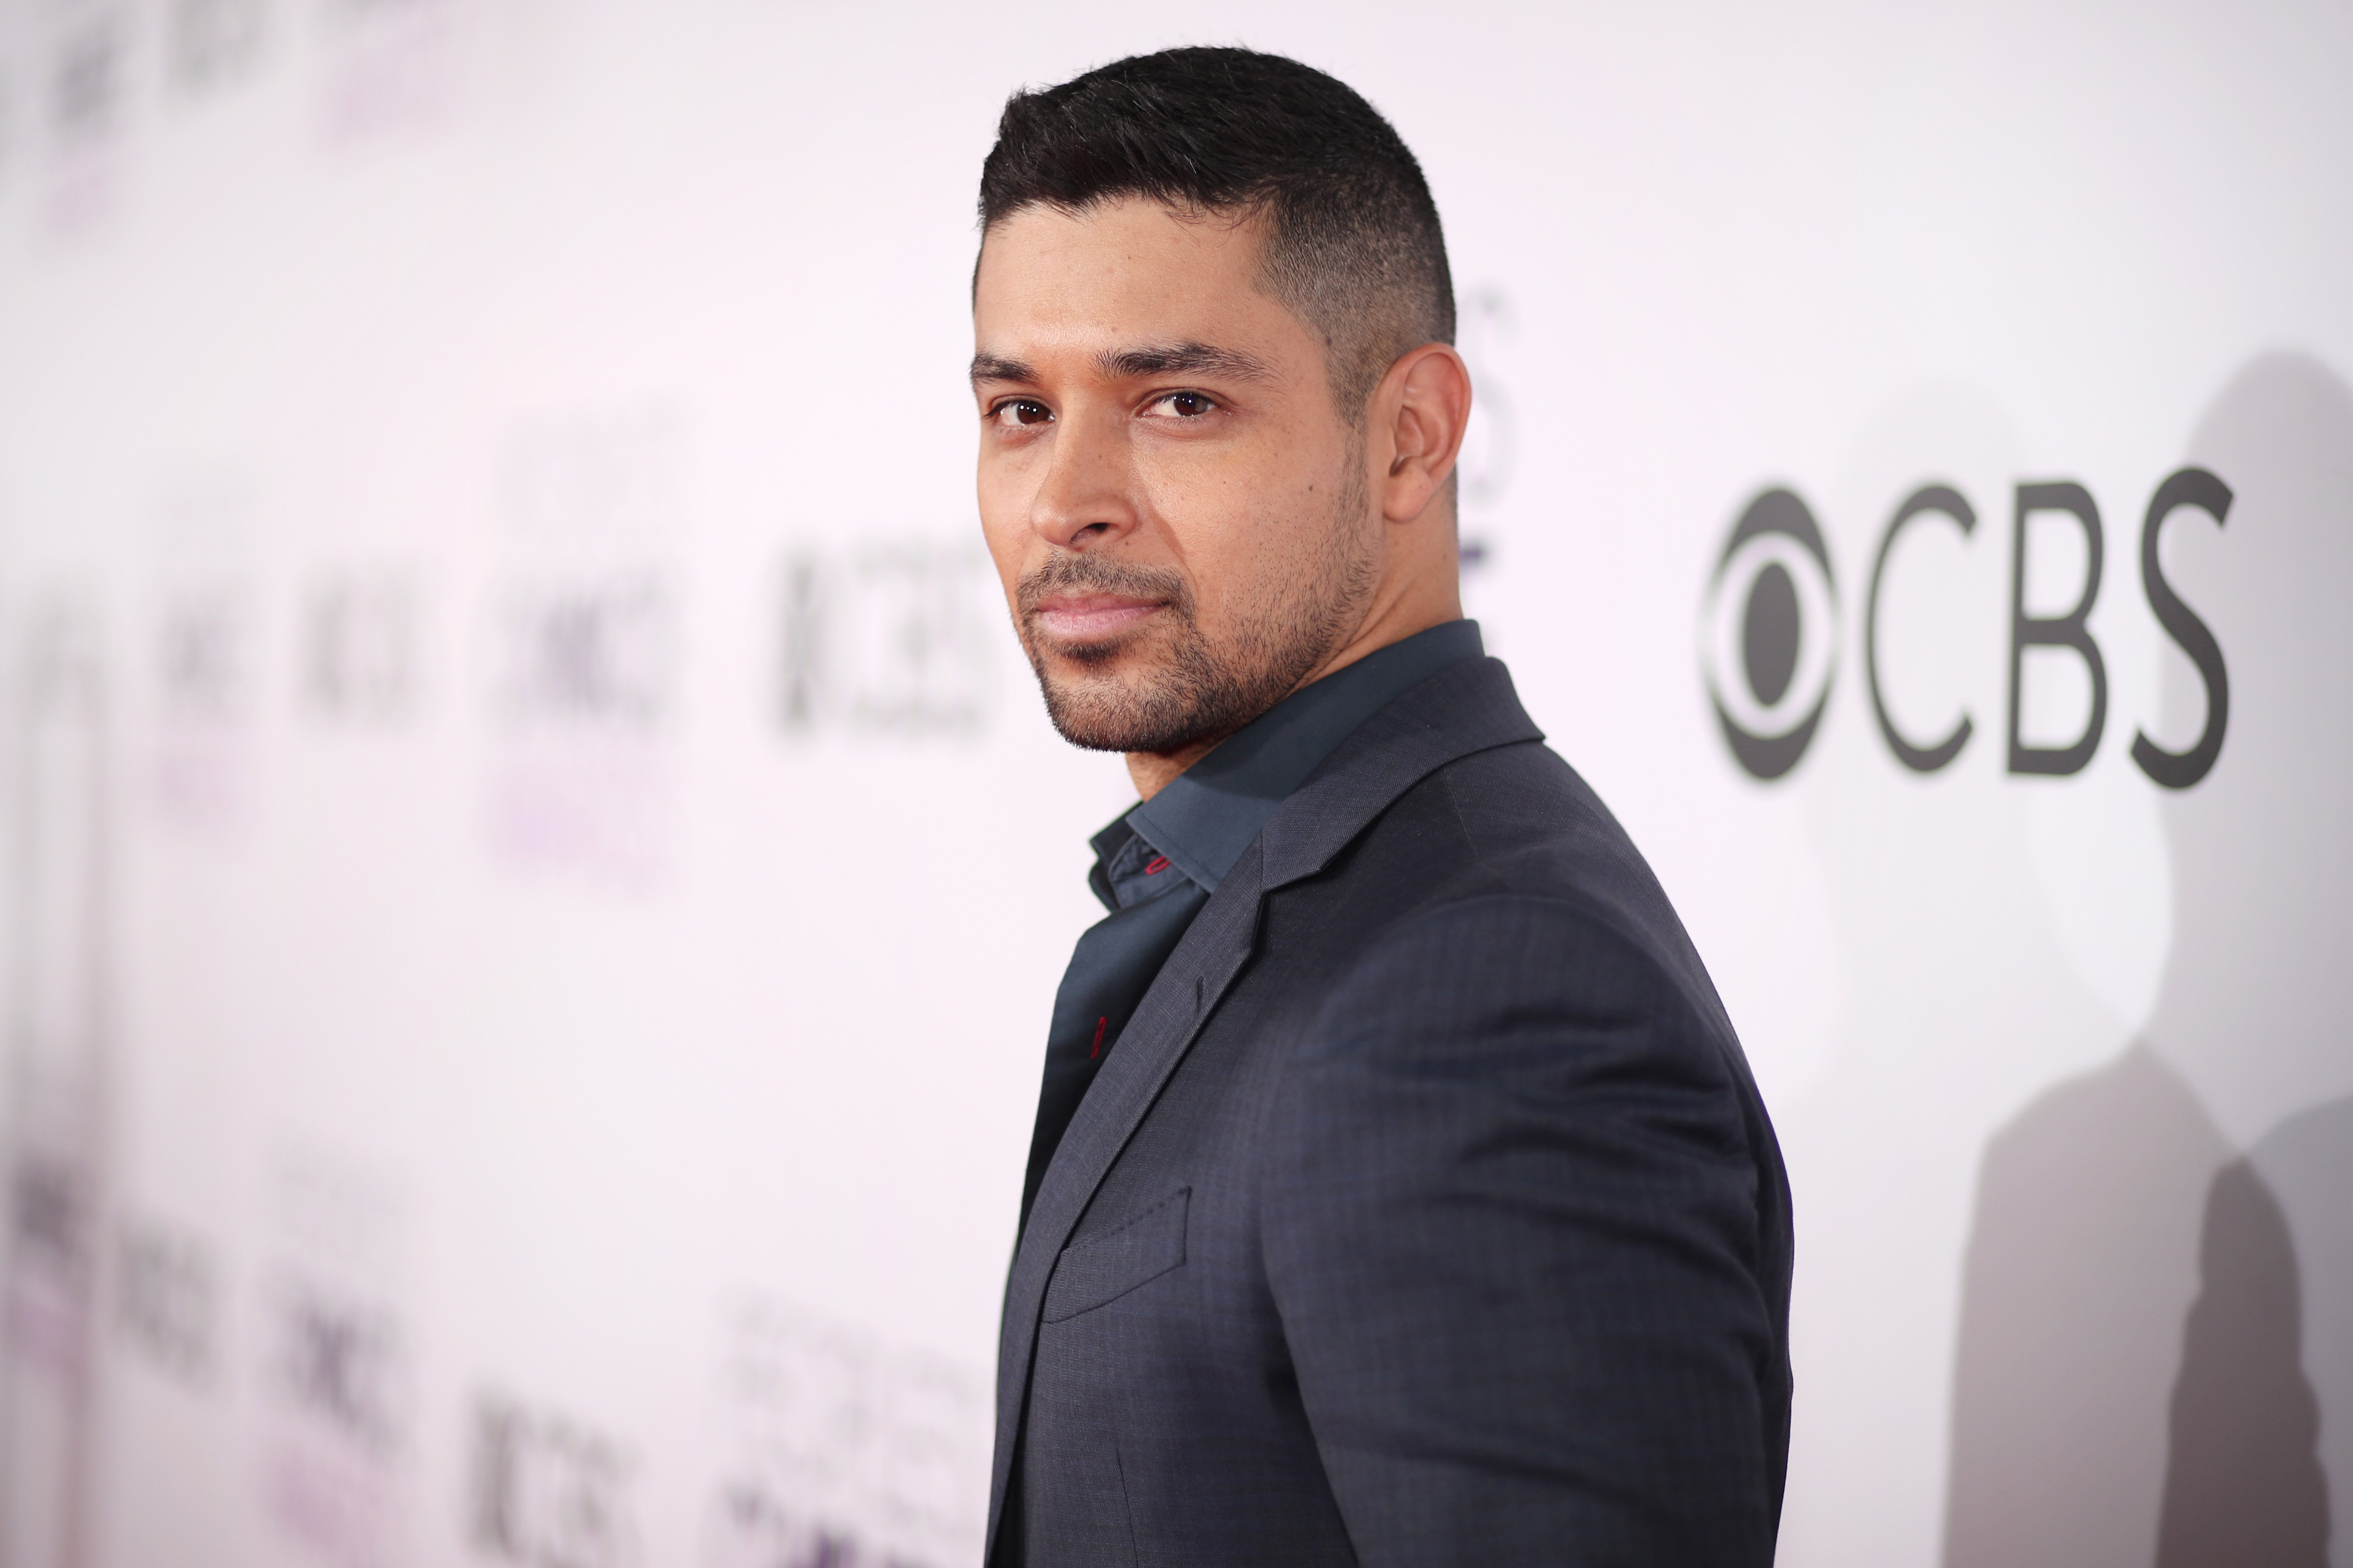 Wilmer Valderrama at the People's Choice Awards in 2017 | Photo:Getty Images